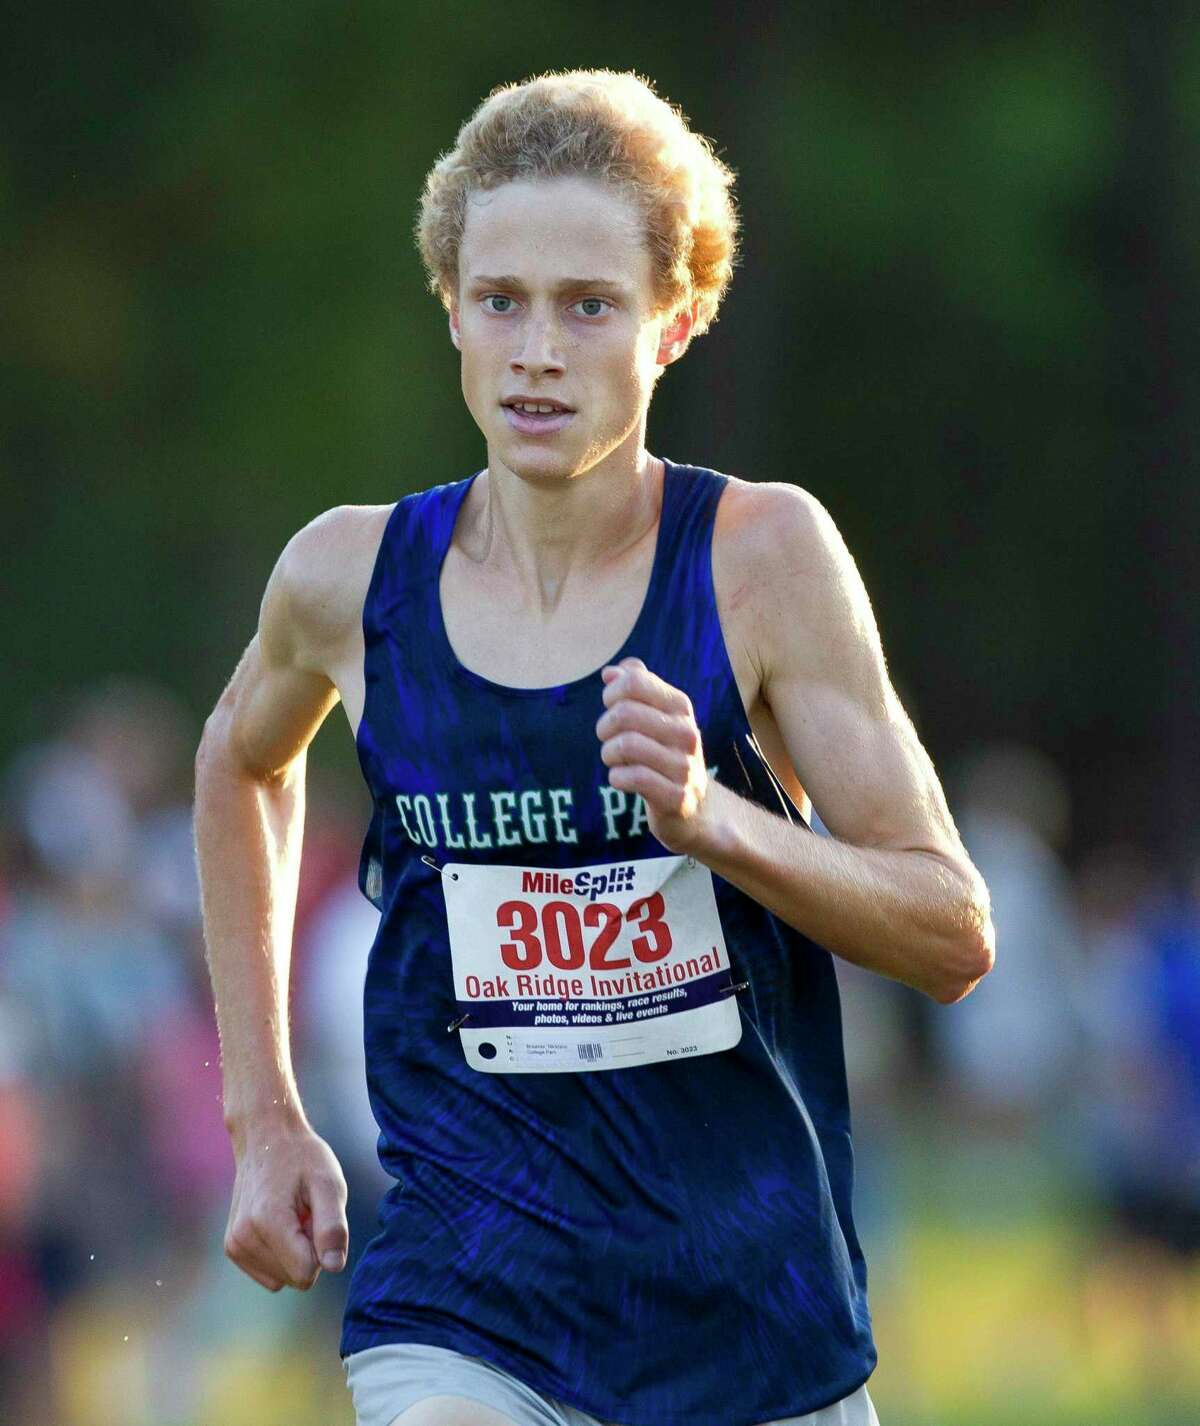 Nicklaus Brawner of College Park, shown here earlier this month, won the Saturday's College Park Invitational 5K varsity race.